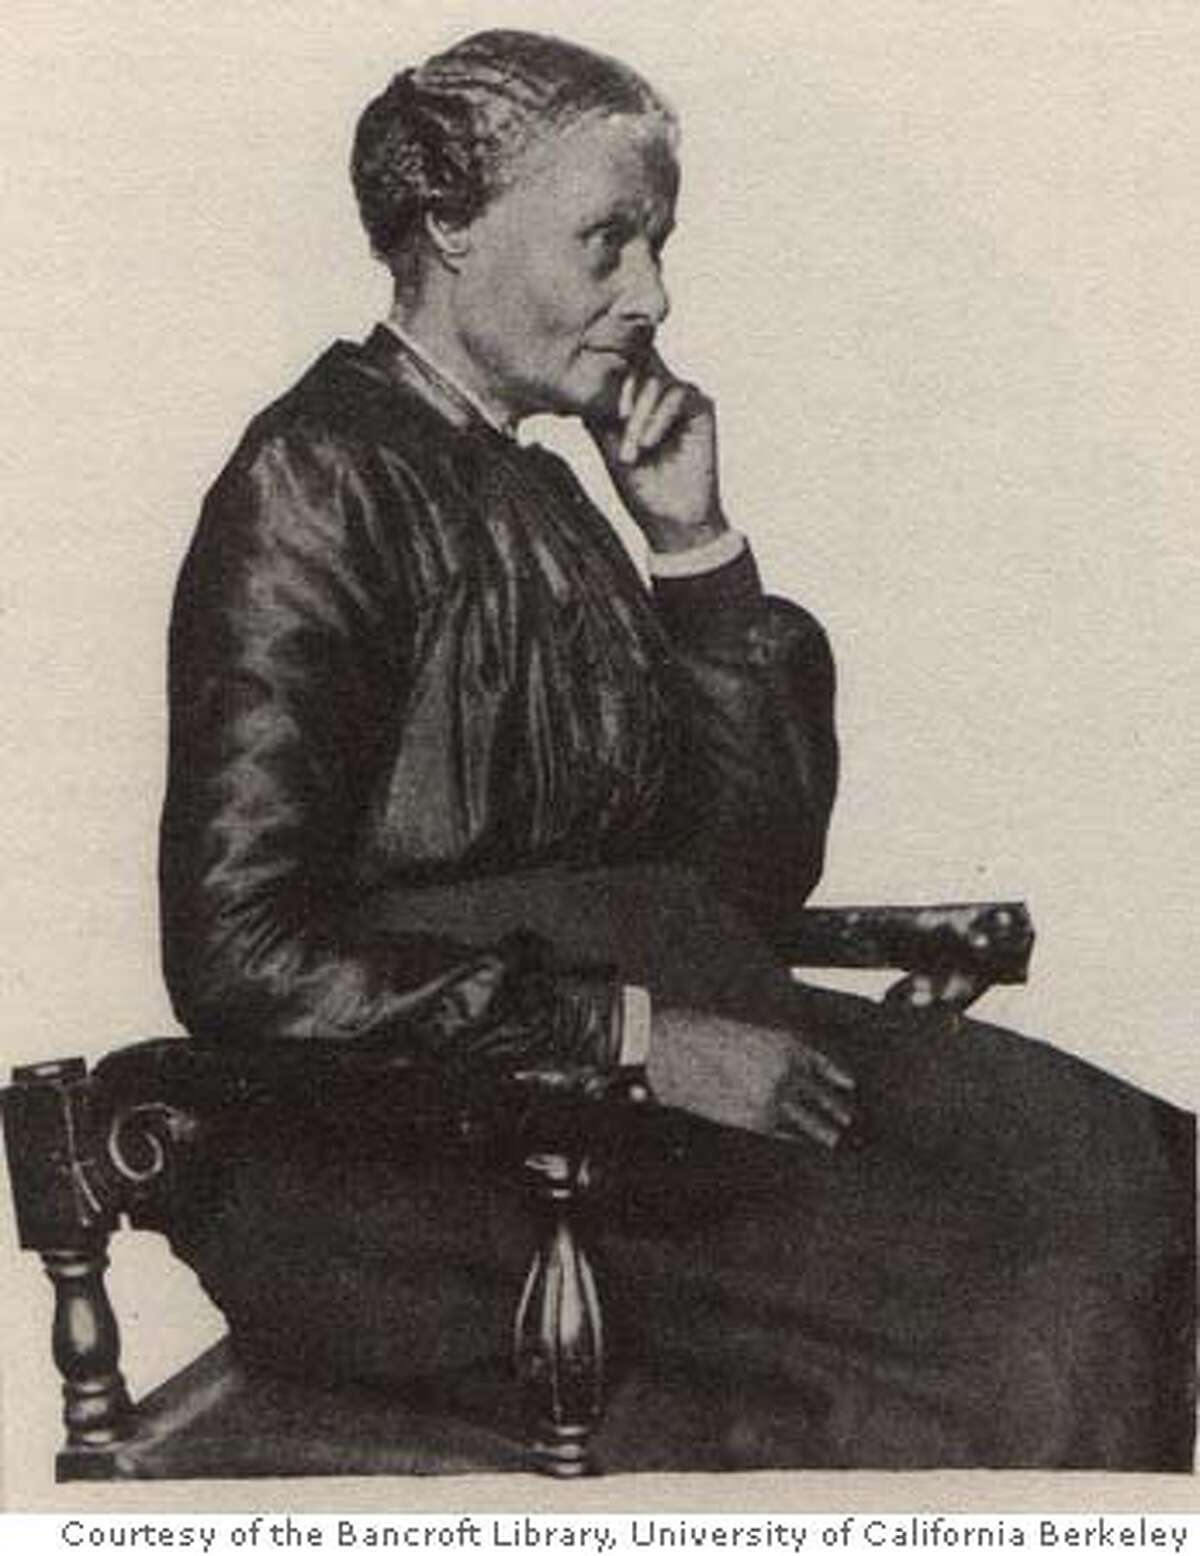 """Mary Ellen Pleasant at eighty-seven years of age. This photograph accompanied her 1902 autobiography printed in the """"Pandex of the Press."""" Photo: Courtesy of the Bancroft Library, University of California Berkeley."""